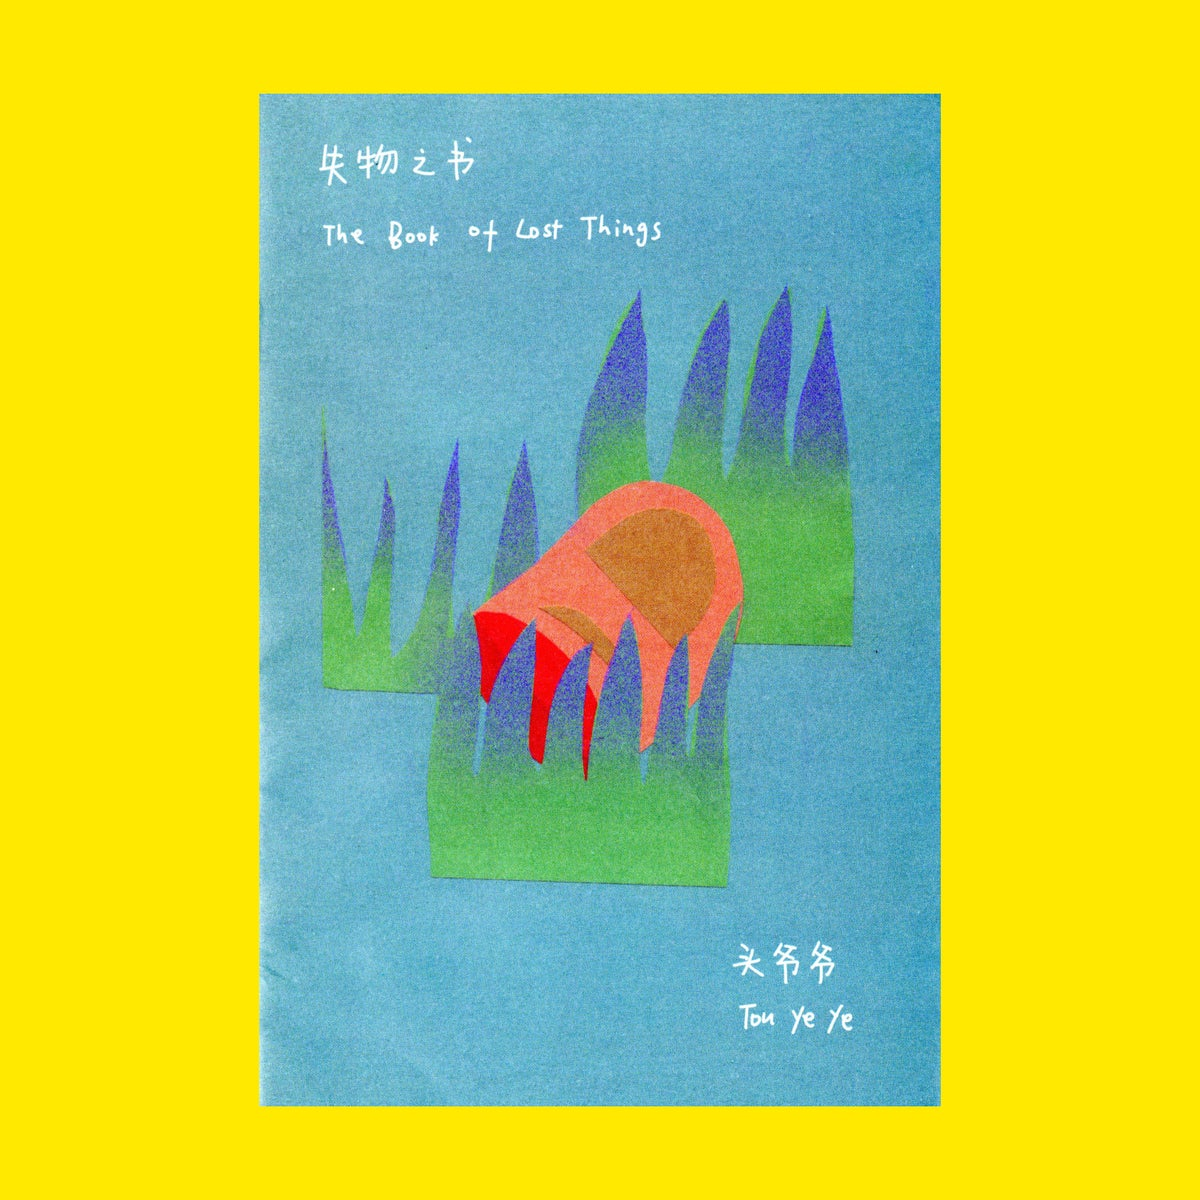 Image of The Book of Lost Things 失物之书